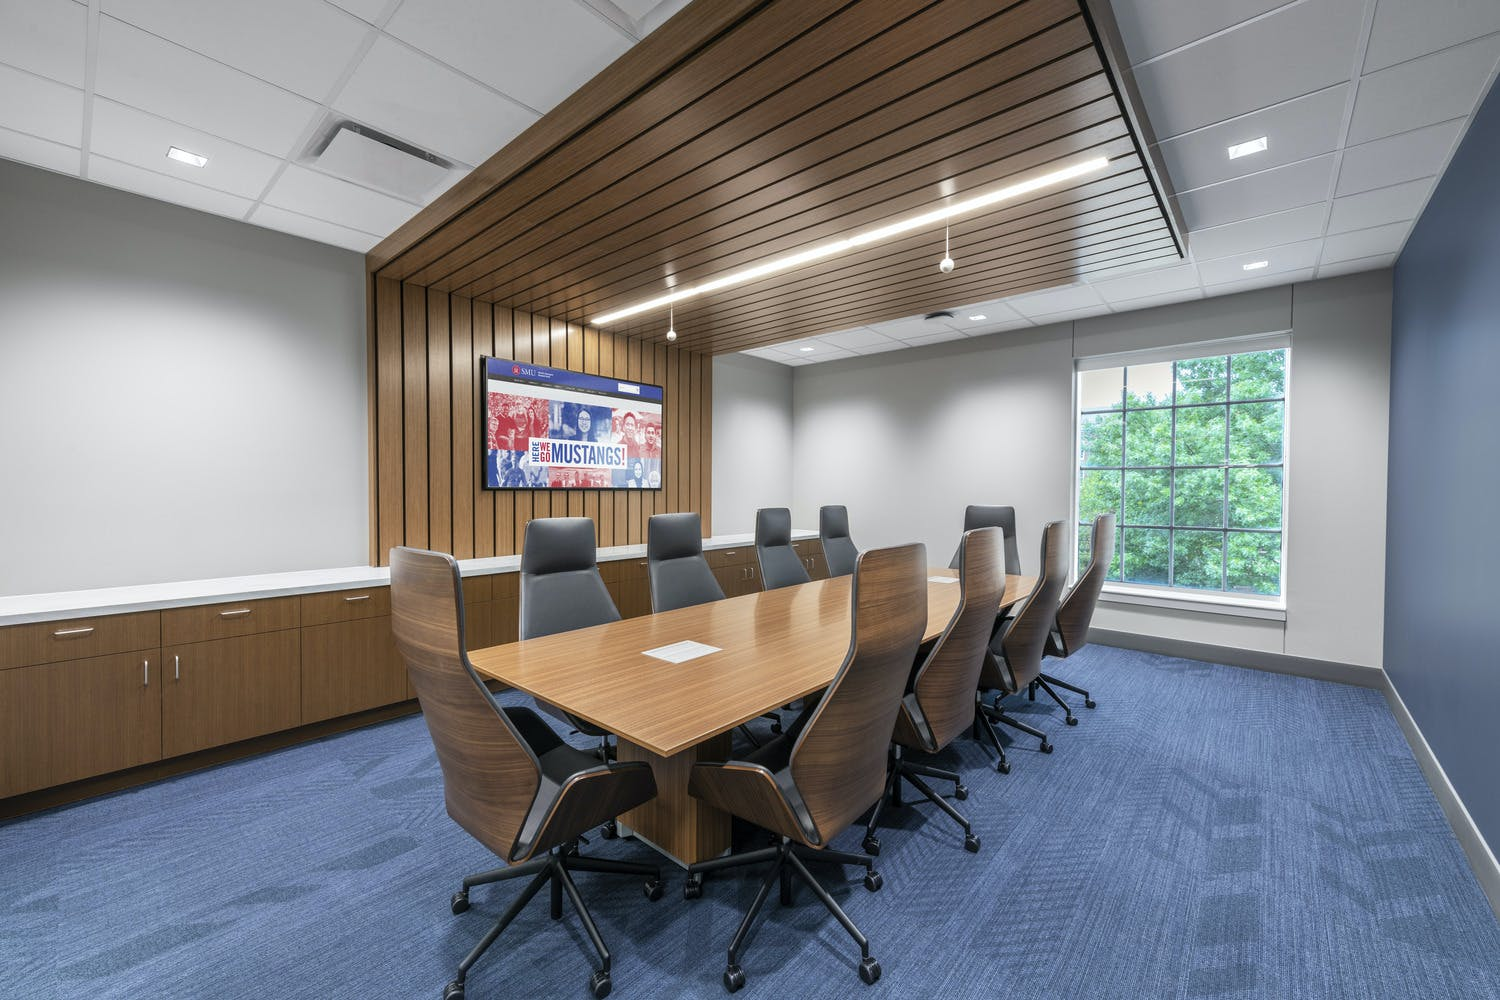 Hughes Trigg Student Center Gallery Images